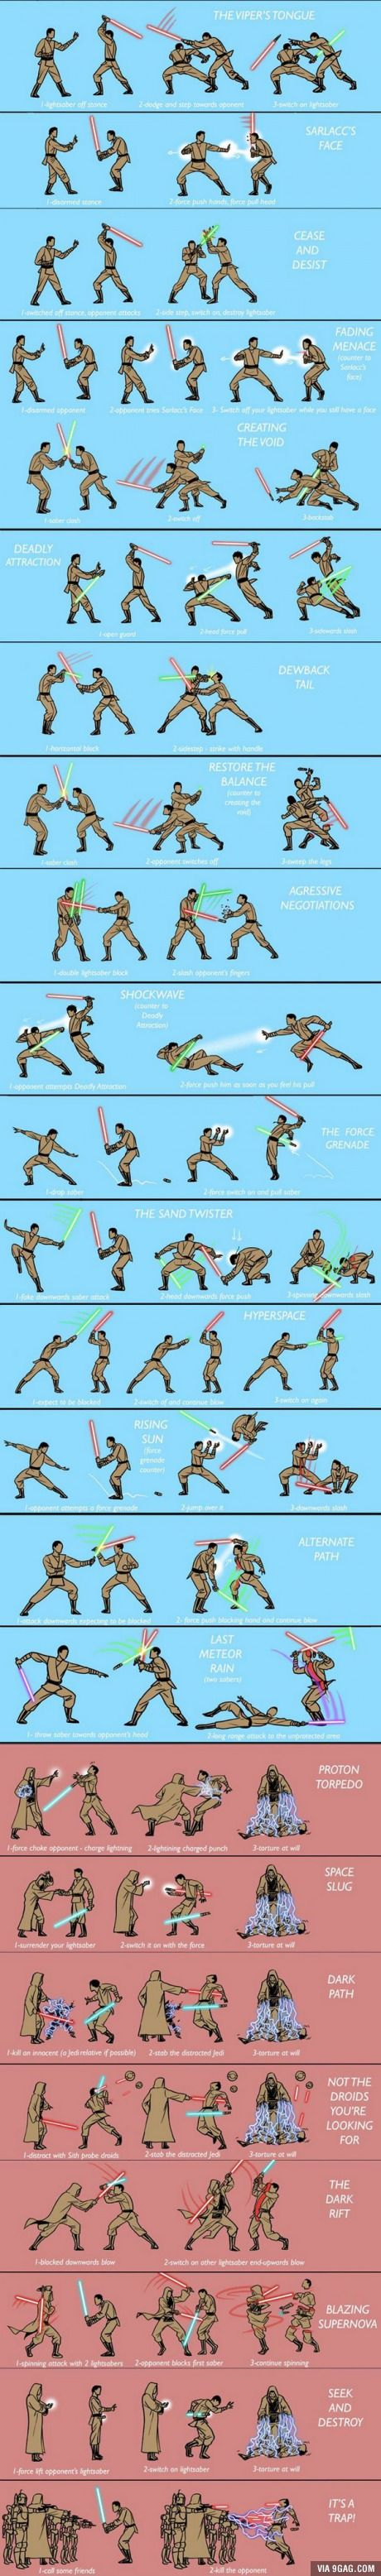 Alternate Lightsaber Techniques -- I think the Jedi Council needs to take some notes here.